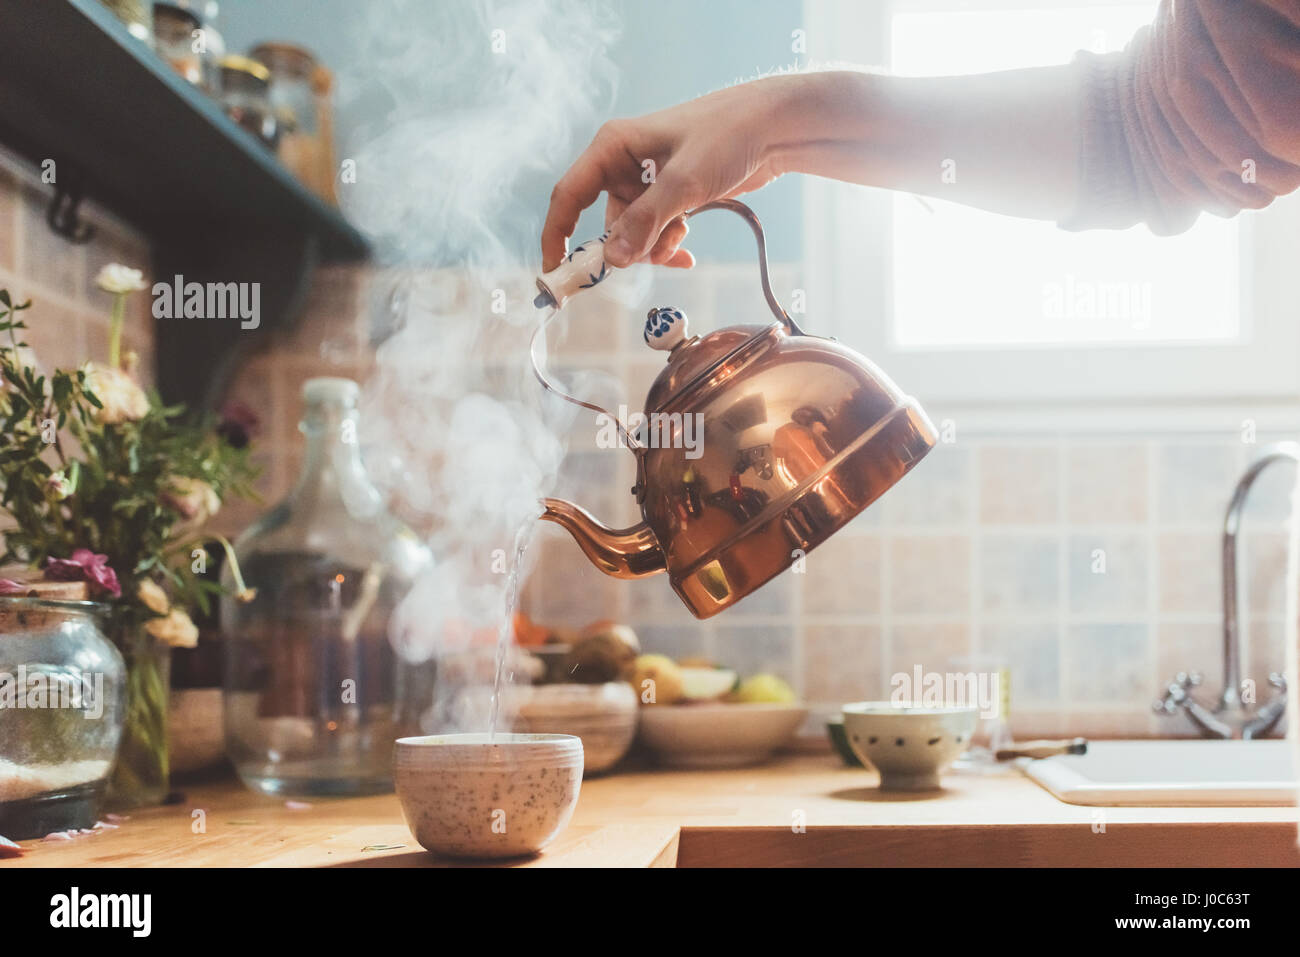 Arm of man pouring boiling water into bowl in kitchen - Stock Image